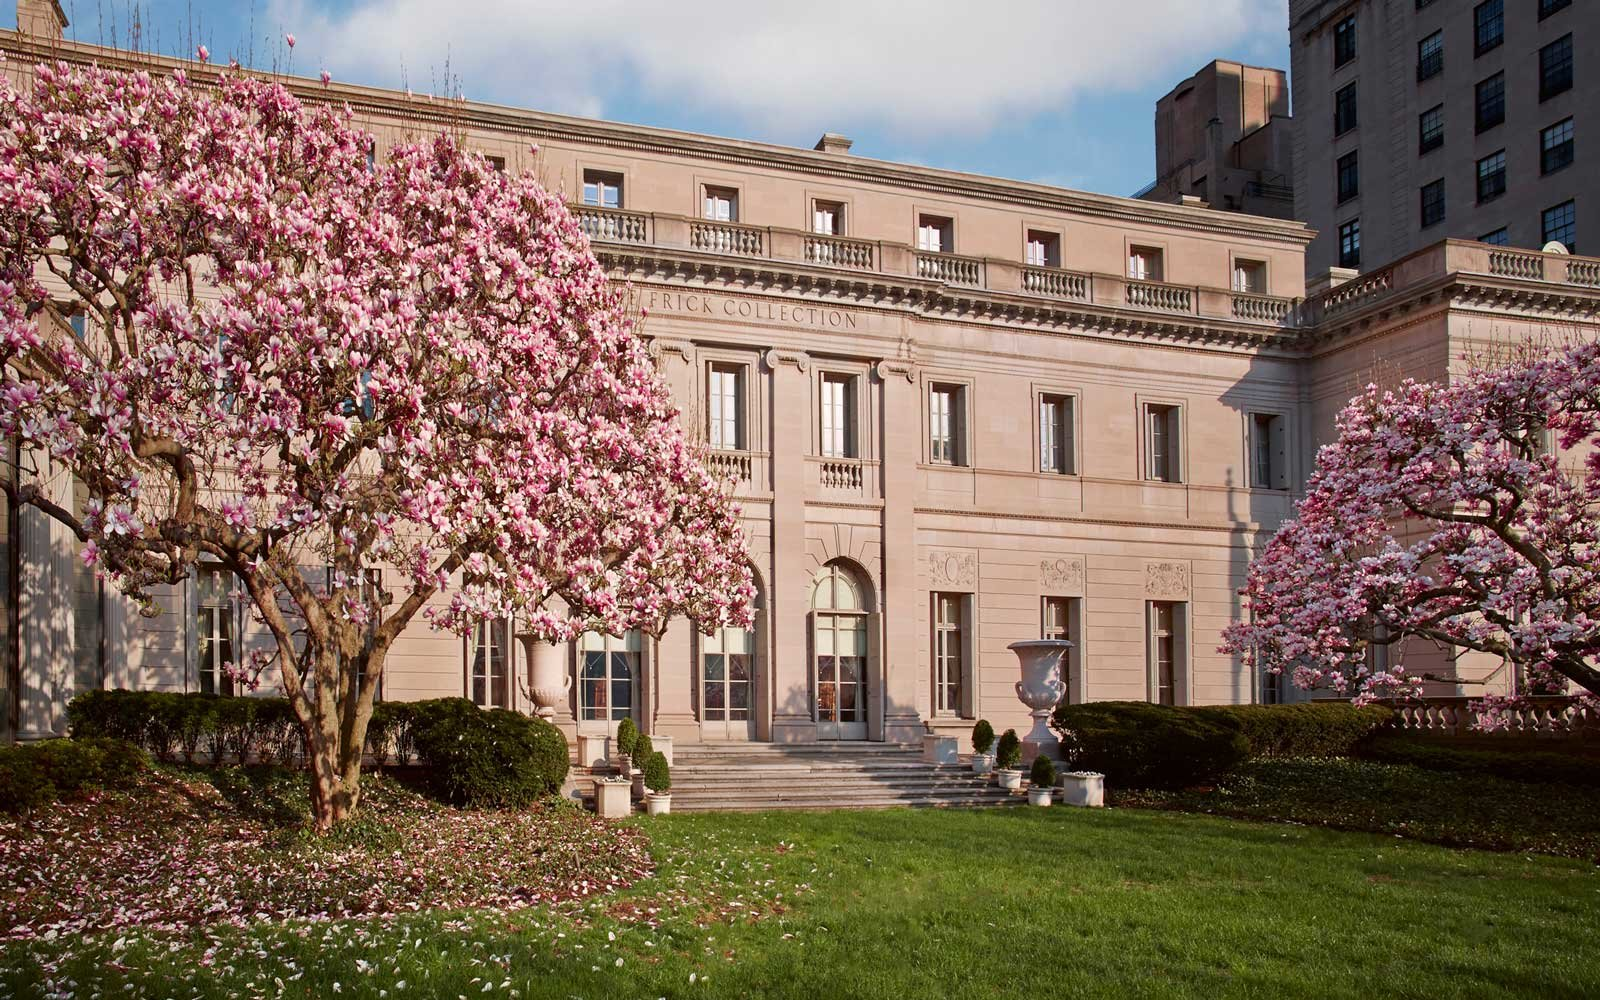 The Frick Collection New York